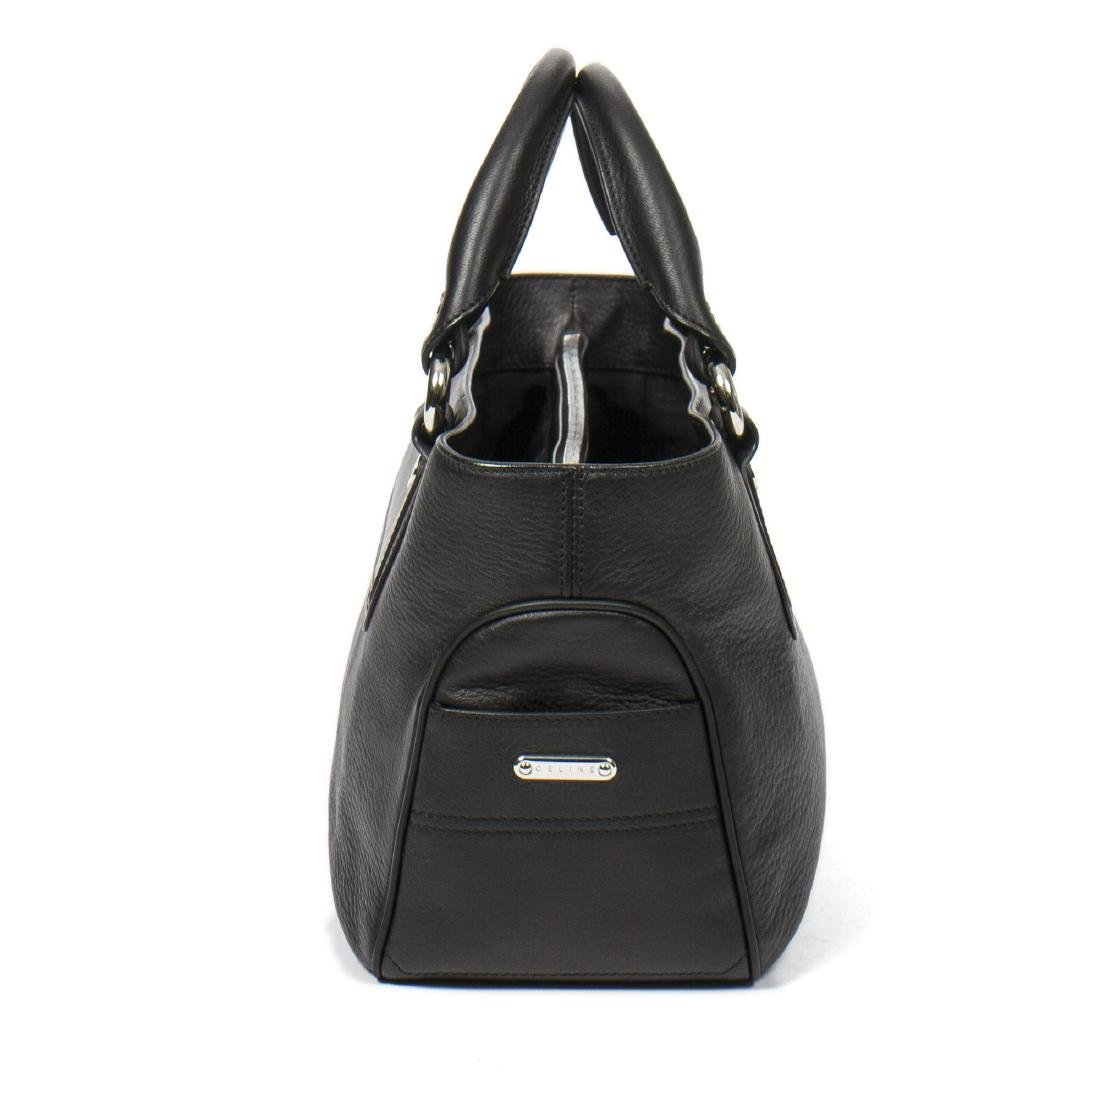 Celine Boogie Bag - 4